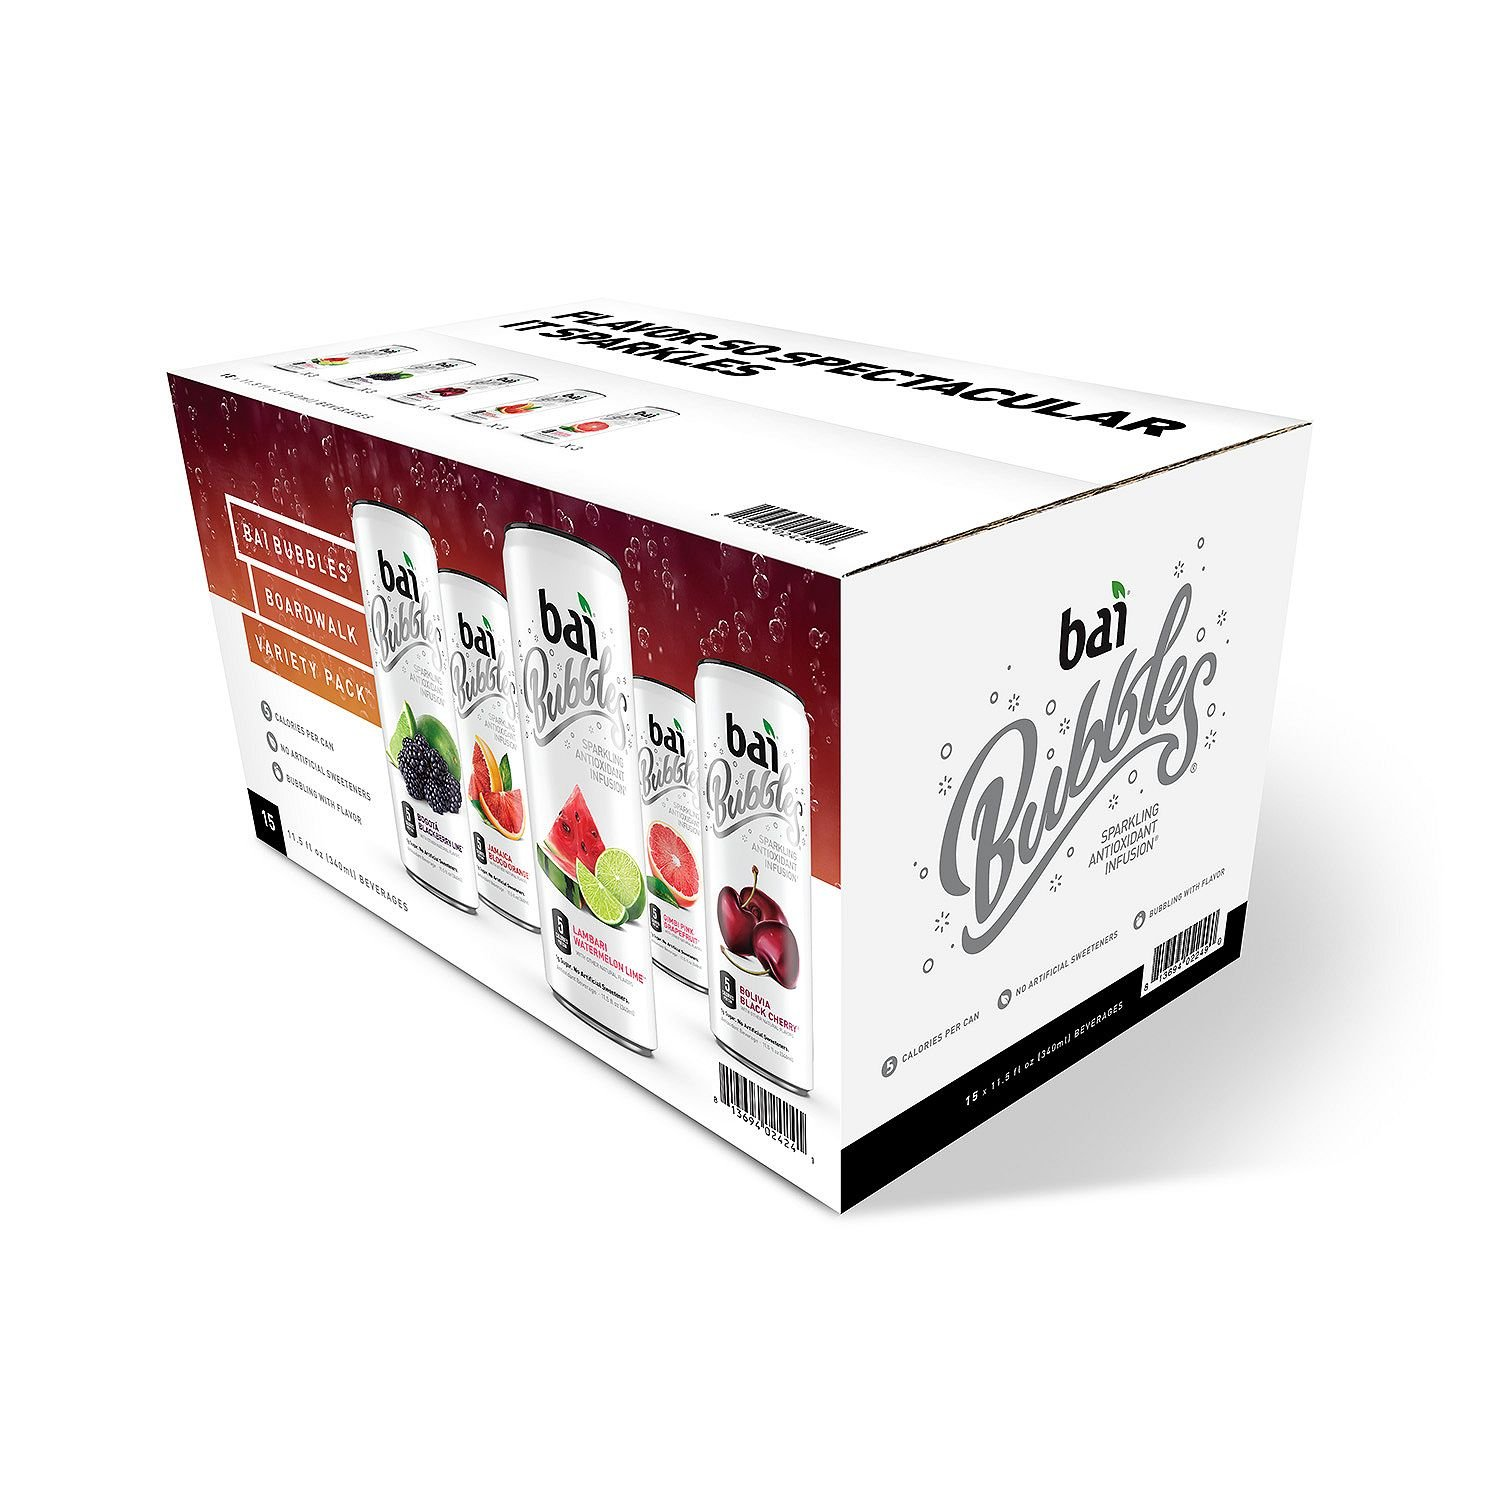 Bai 5 Bubbles Sparkling Antioxidant Infusion Variety Pack (11.5 oz. can, 15 ct.) by Bai Bubbles